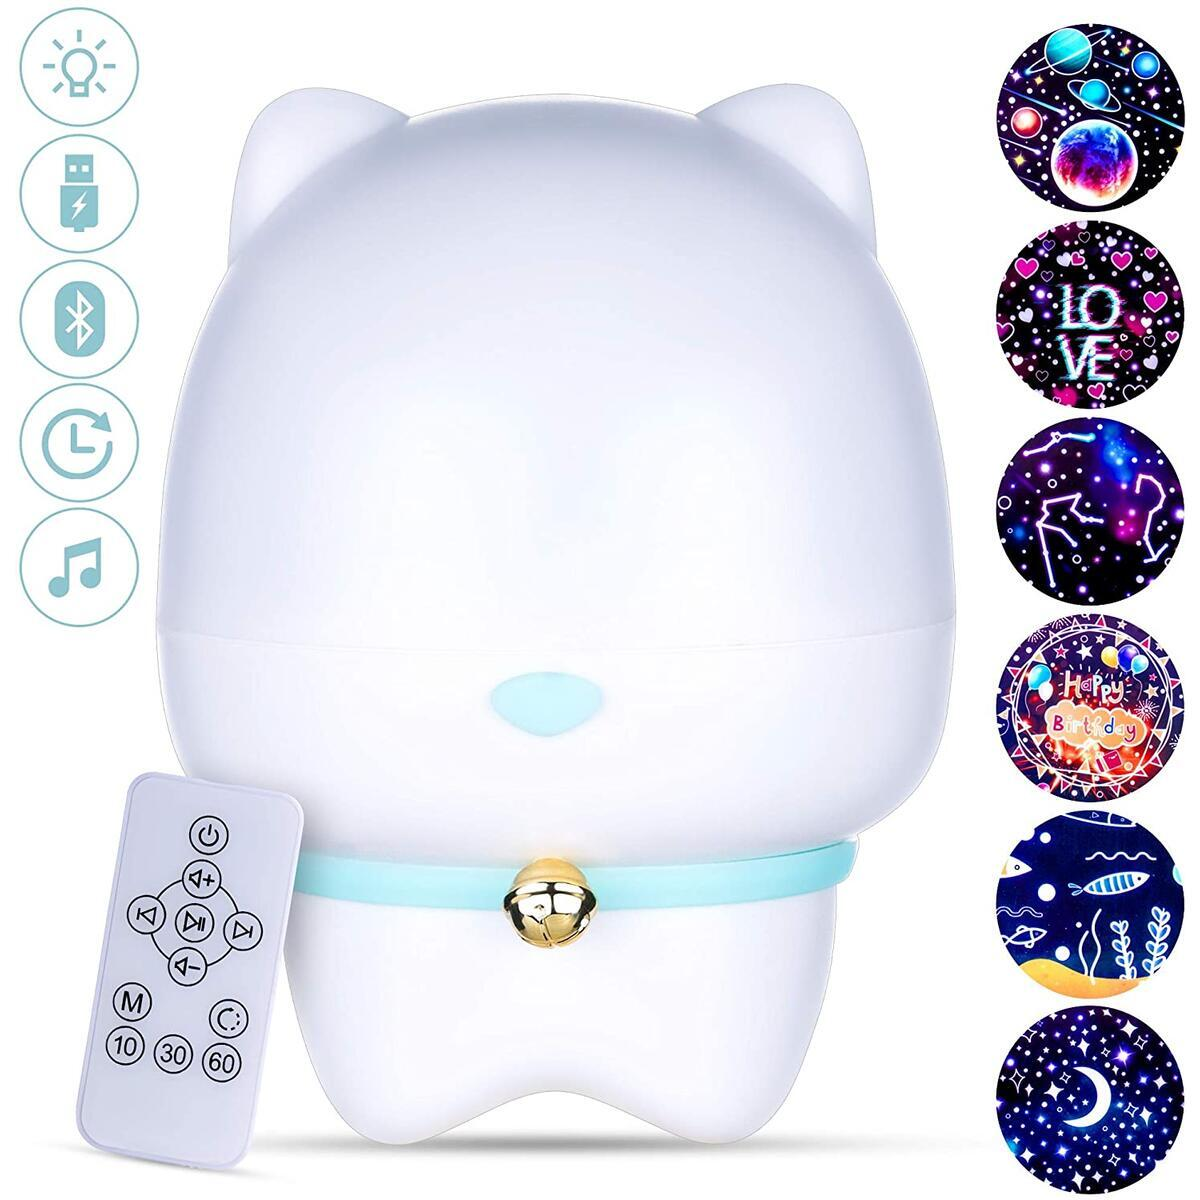 PETS BEATS Night Light Projector for Kids - 360 Rotating with 6 Interchangeable Projecting Films, Remote Control, USB - Kids Night Light with Bluetooth Speaker - Soothes Toddlers and Babies - Blue